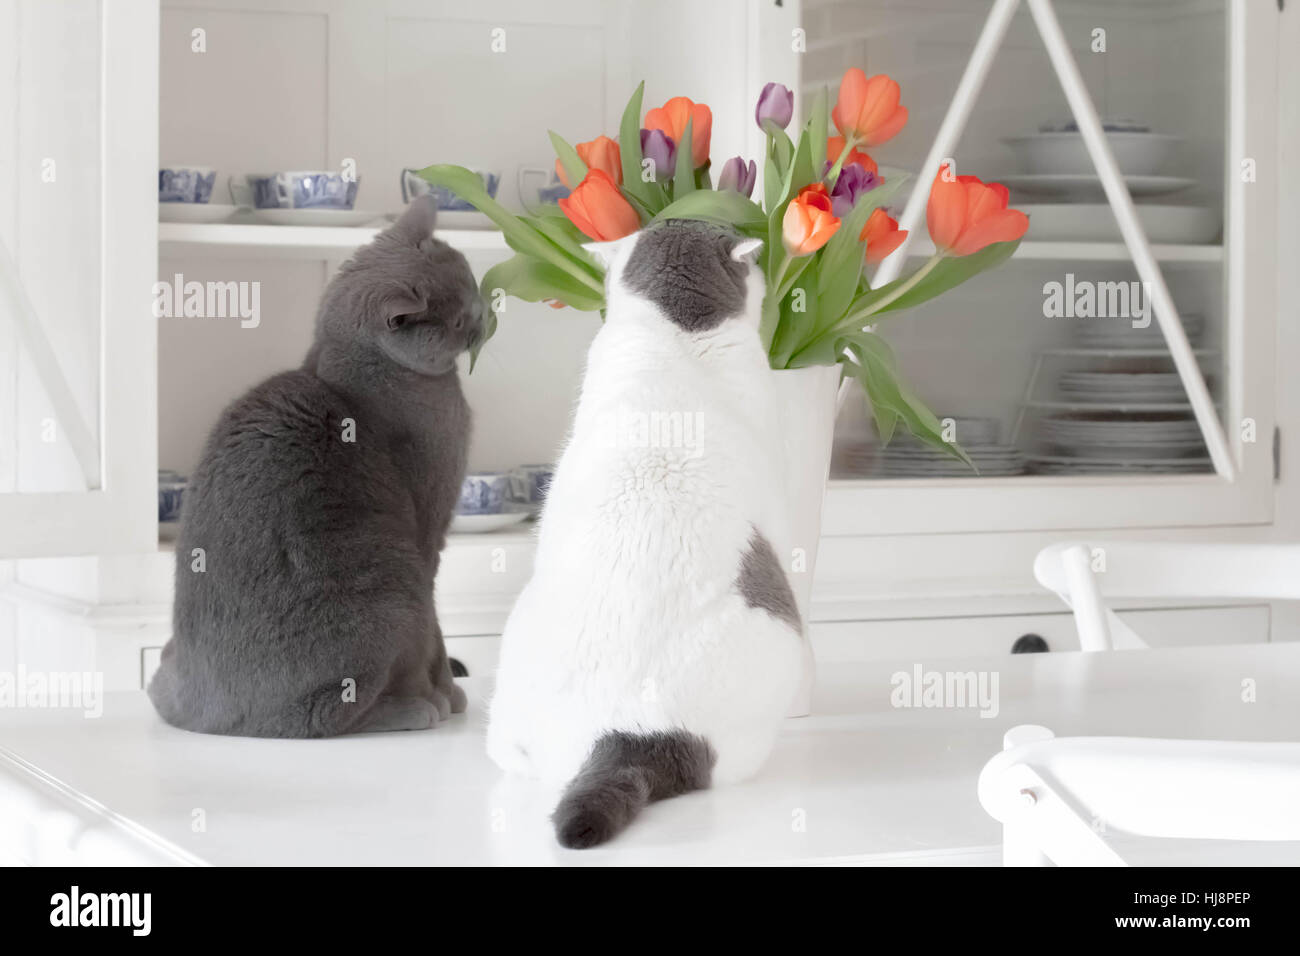 Two cats looking at tulips in kitchen - Stock Image